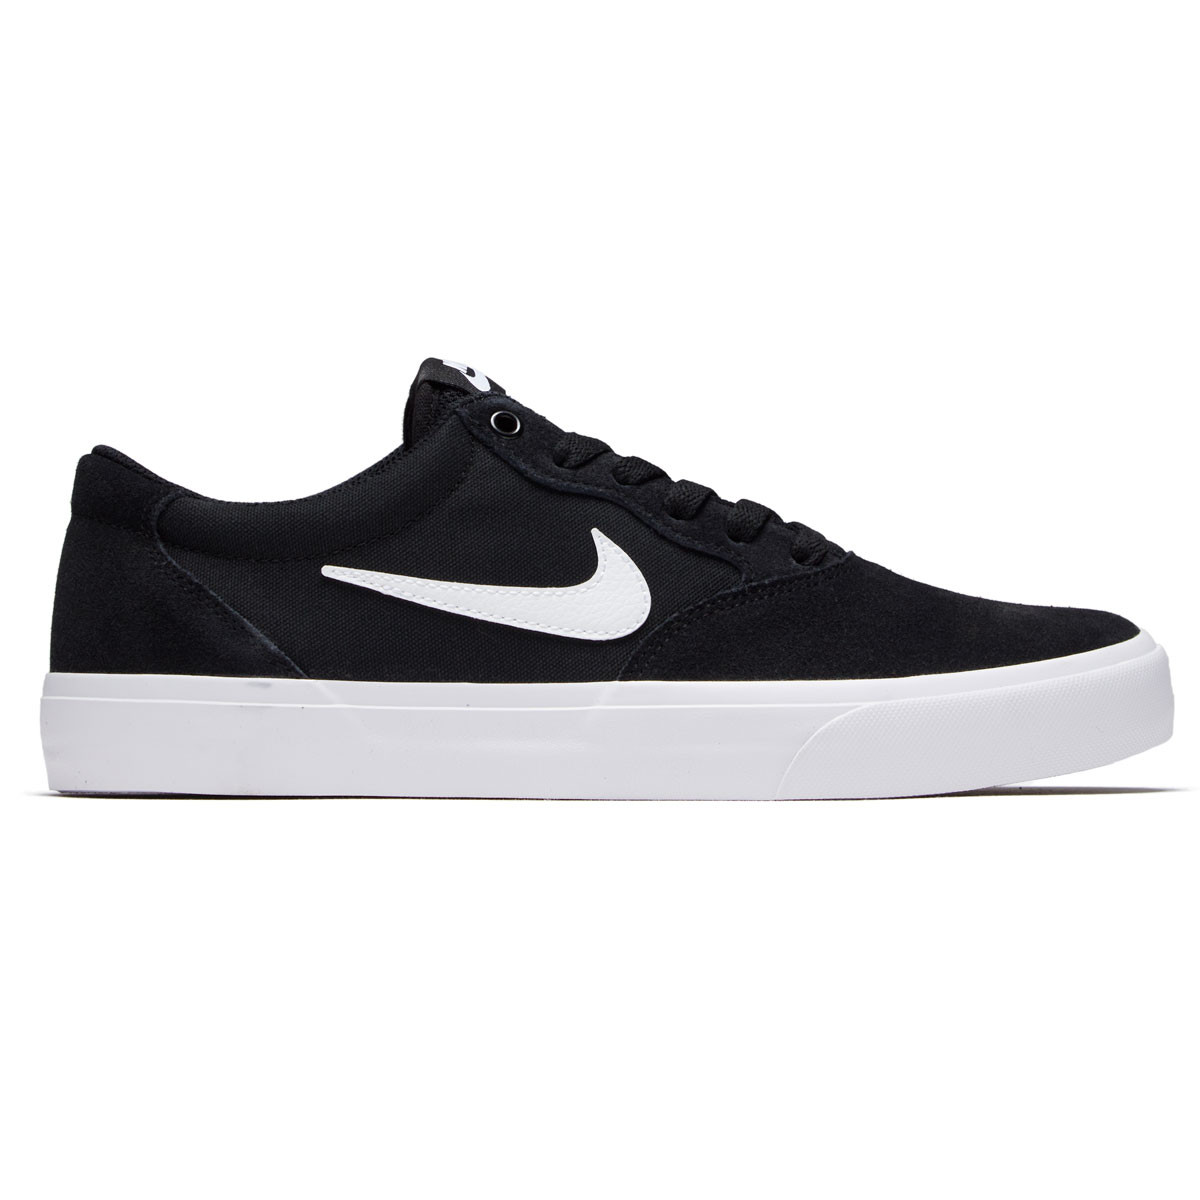 4ccc9d05f34b Nike SB Chron SLR Shoes - Black White